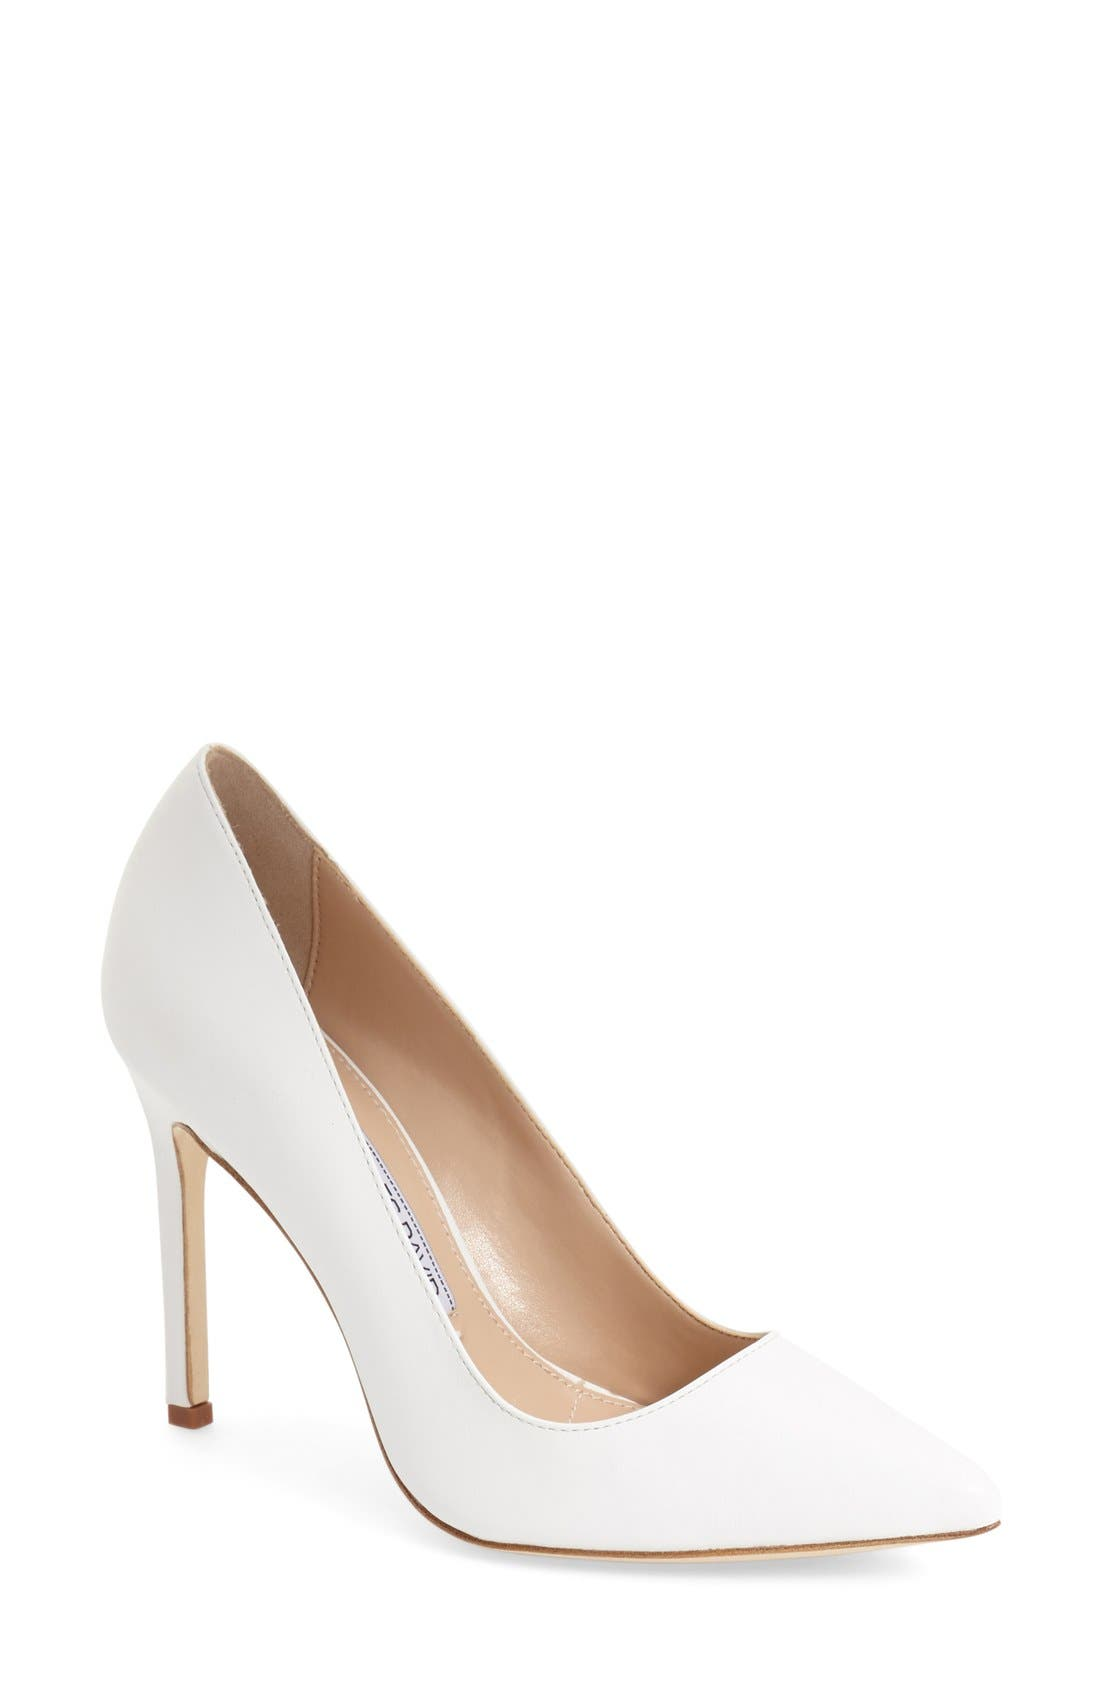 Main Image - Charles David 'Caterina' Pointy Toe Pump (Women) (Online Only)